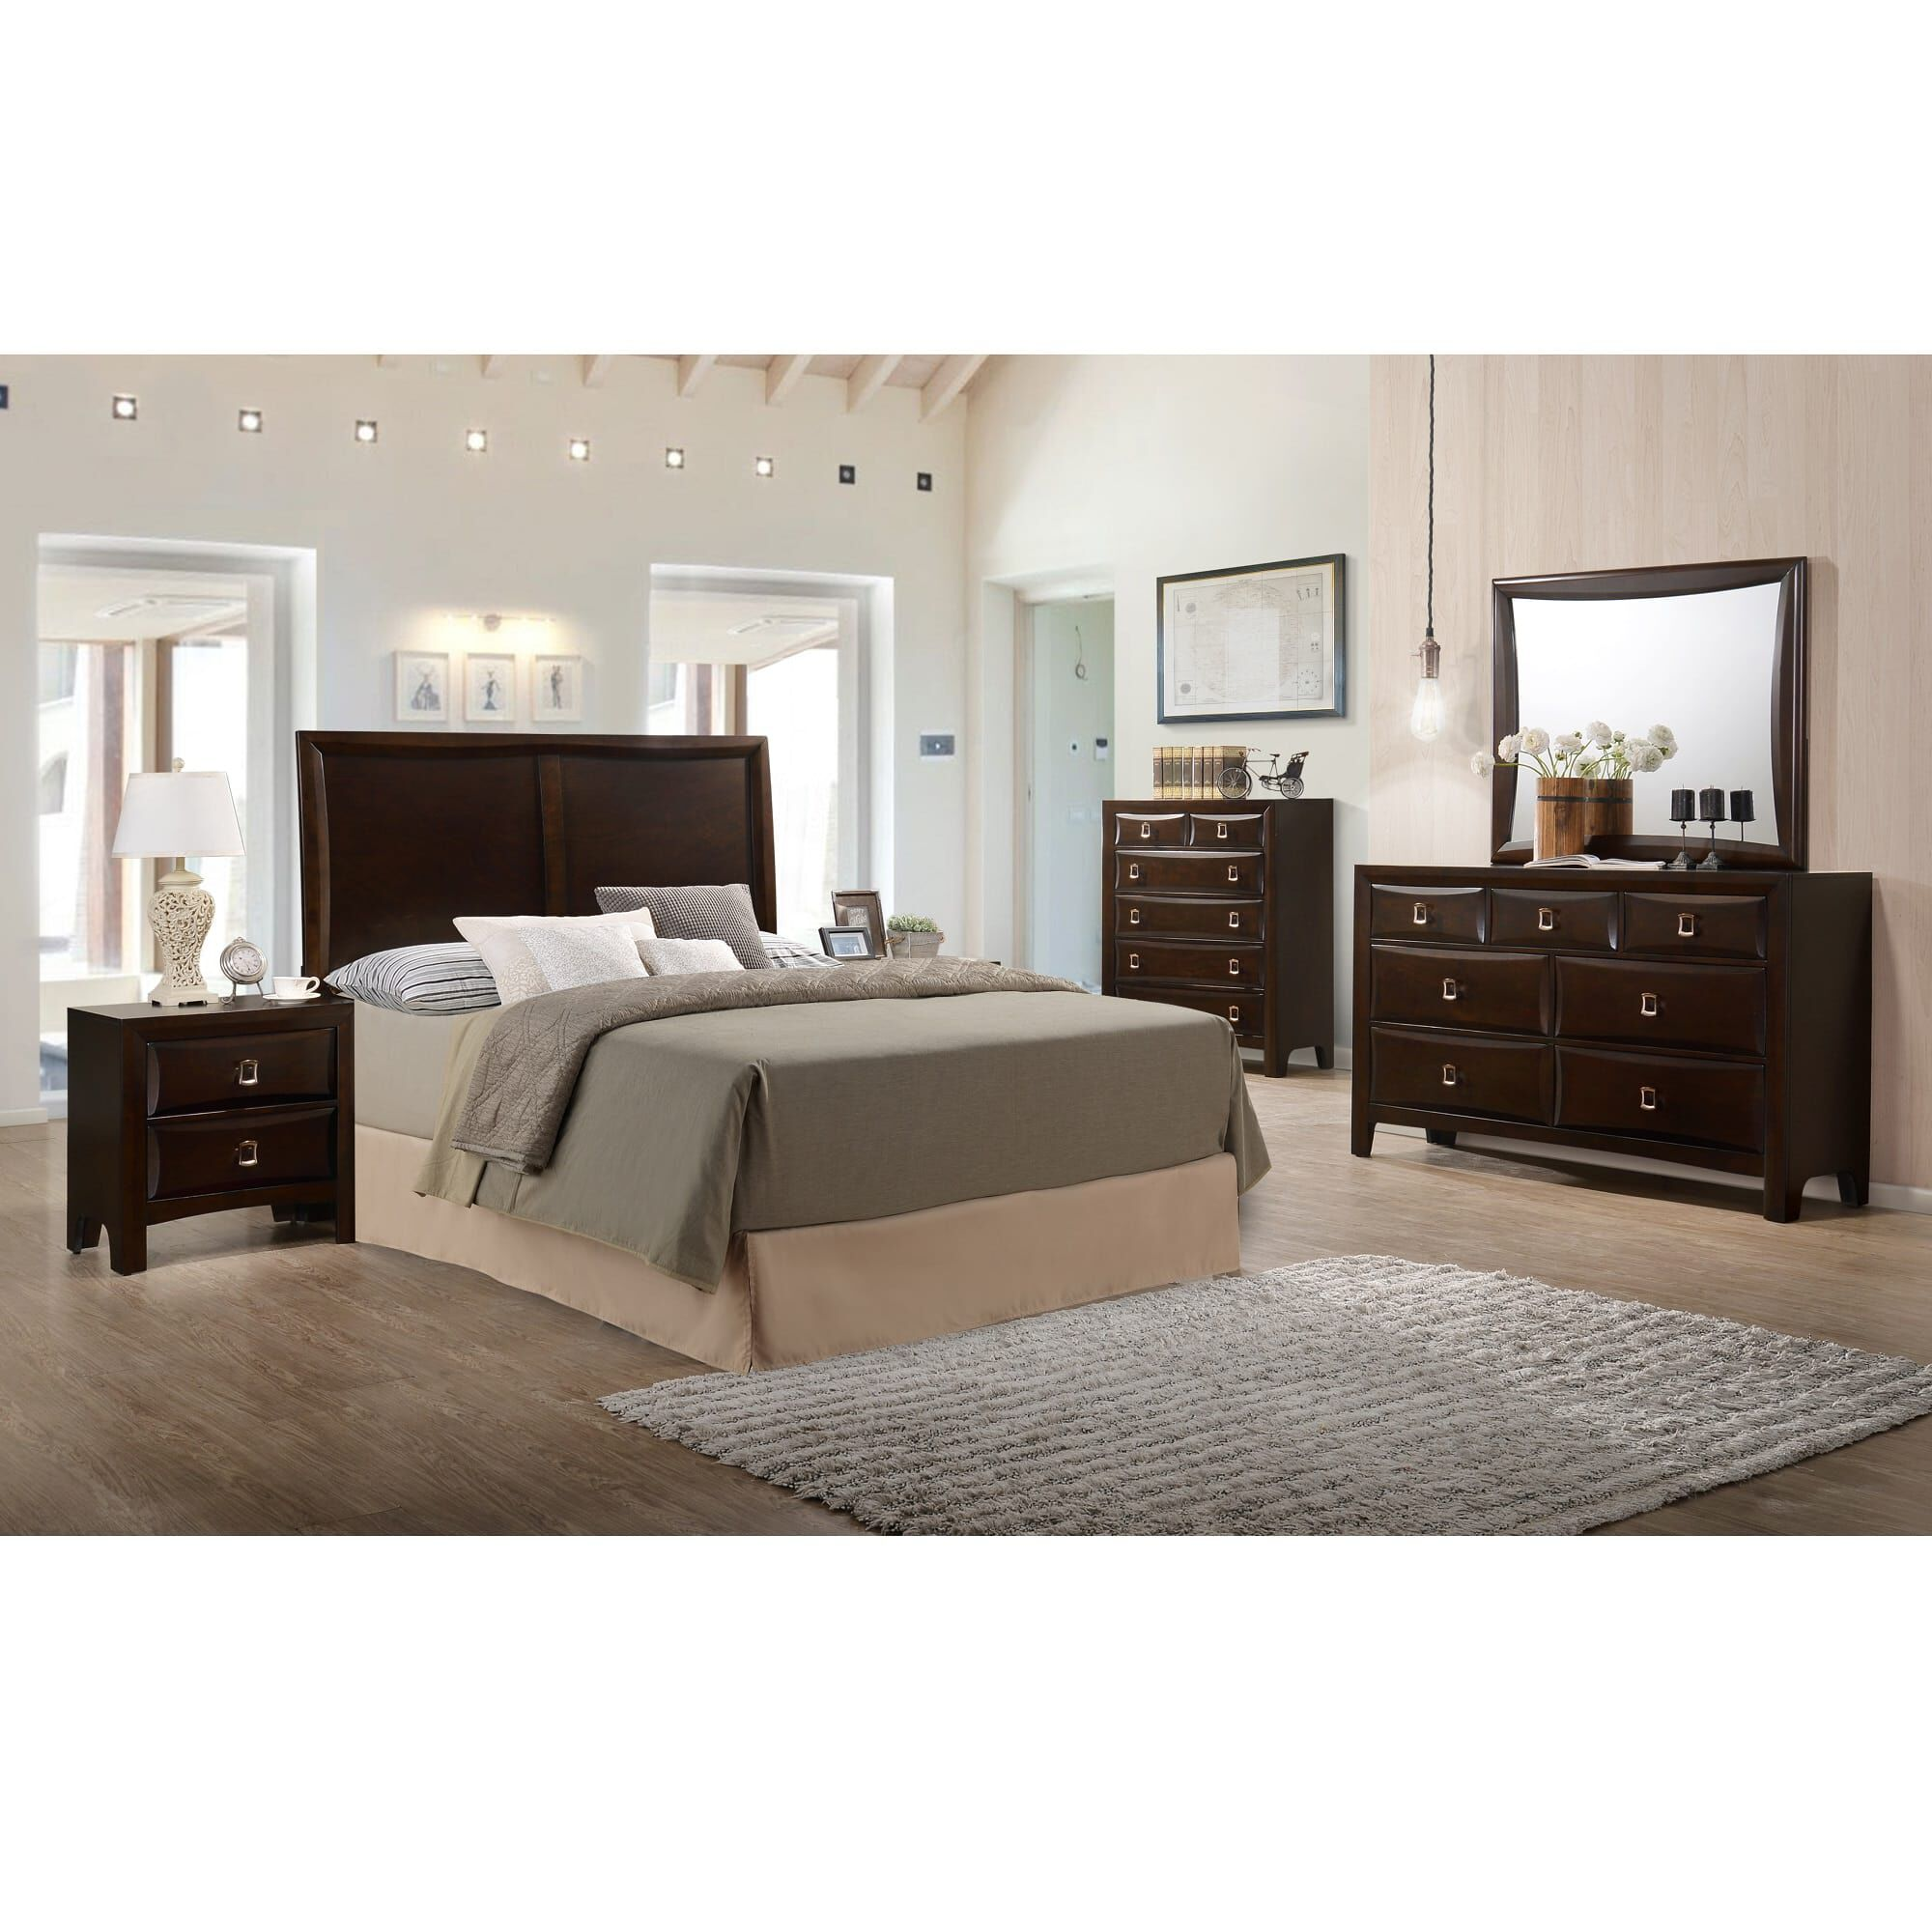 5 Piece Franklin Queen Bedroom Collection. Step One Furniture